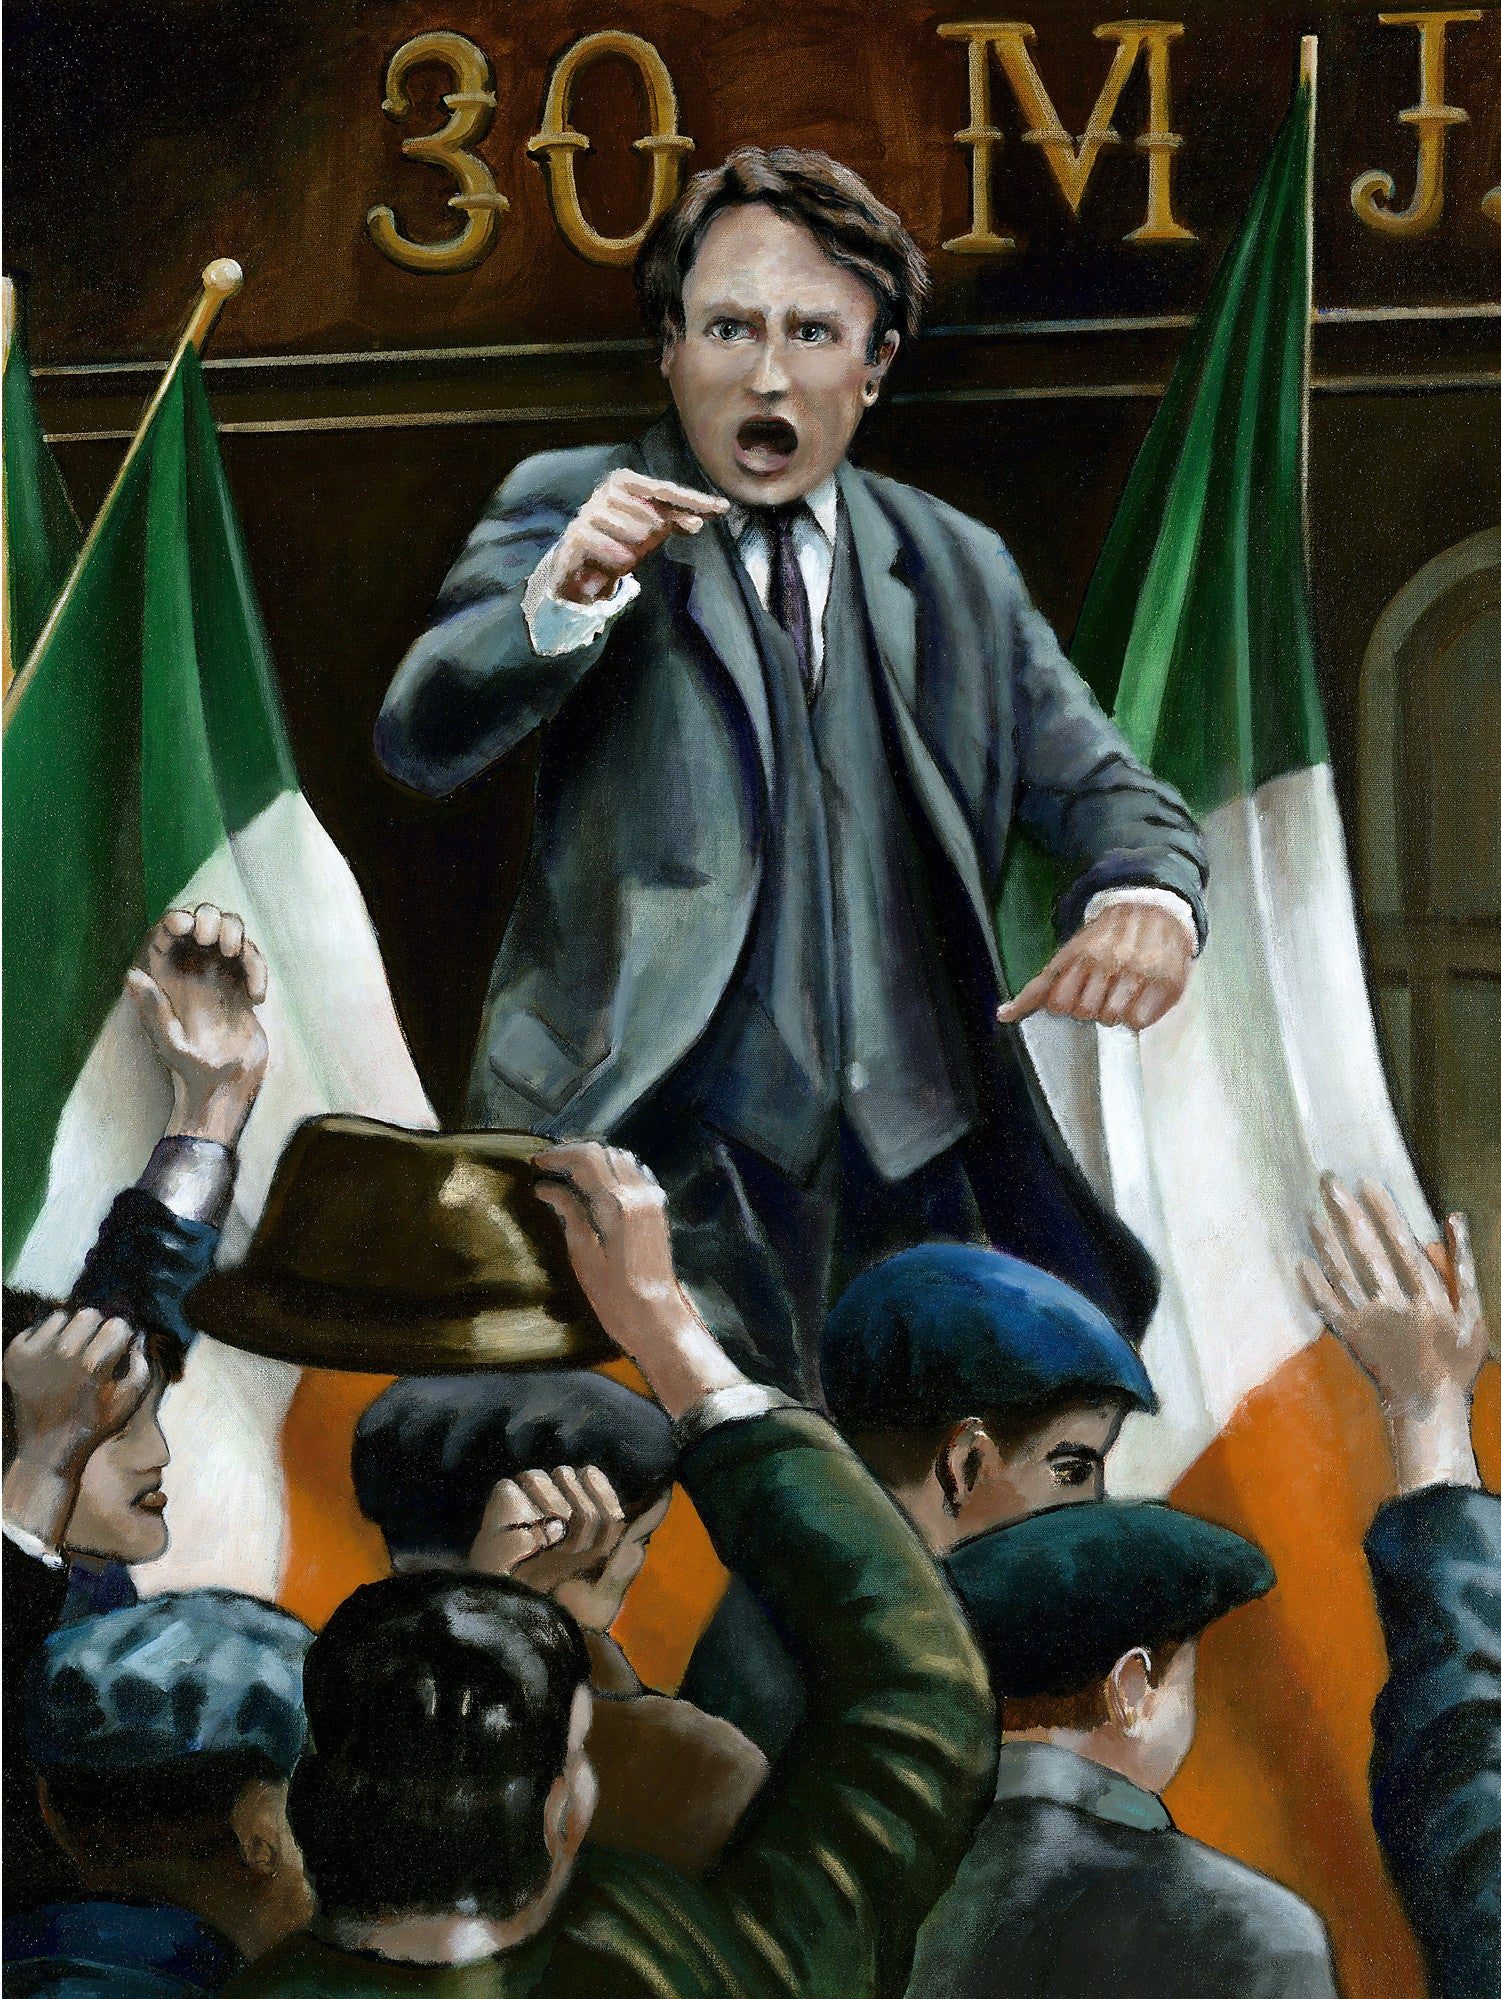 Michael Collins by artist Trevor Goring